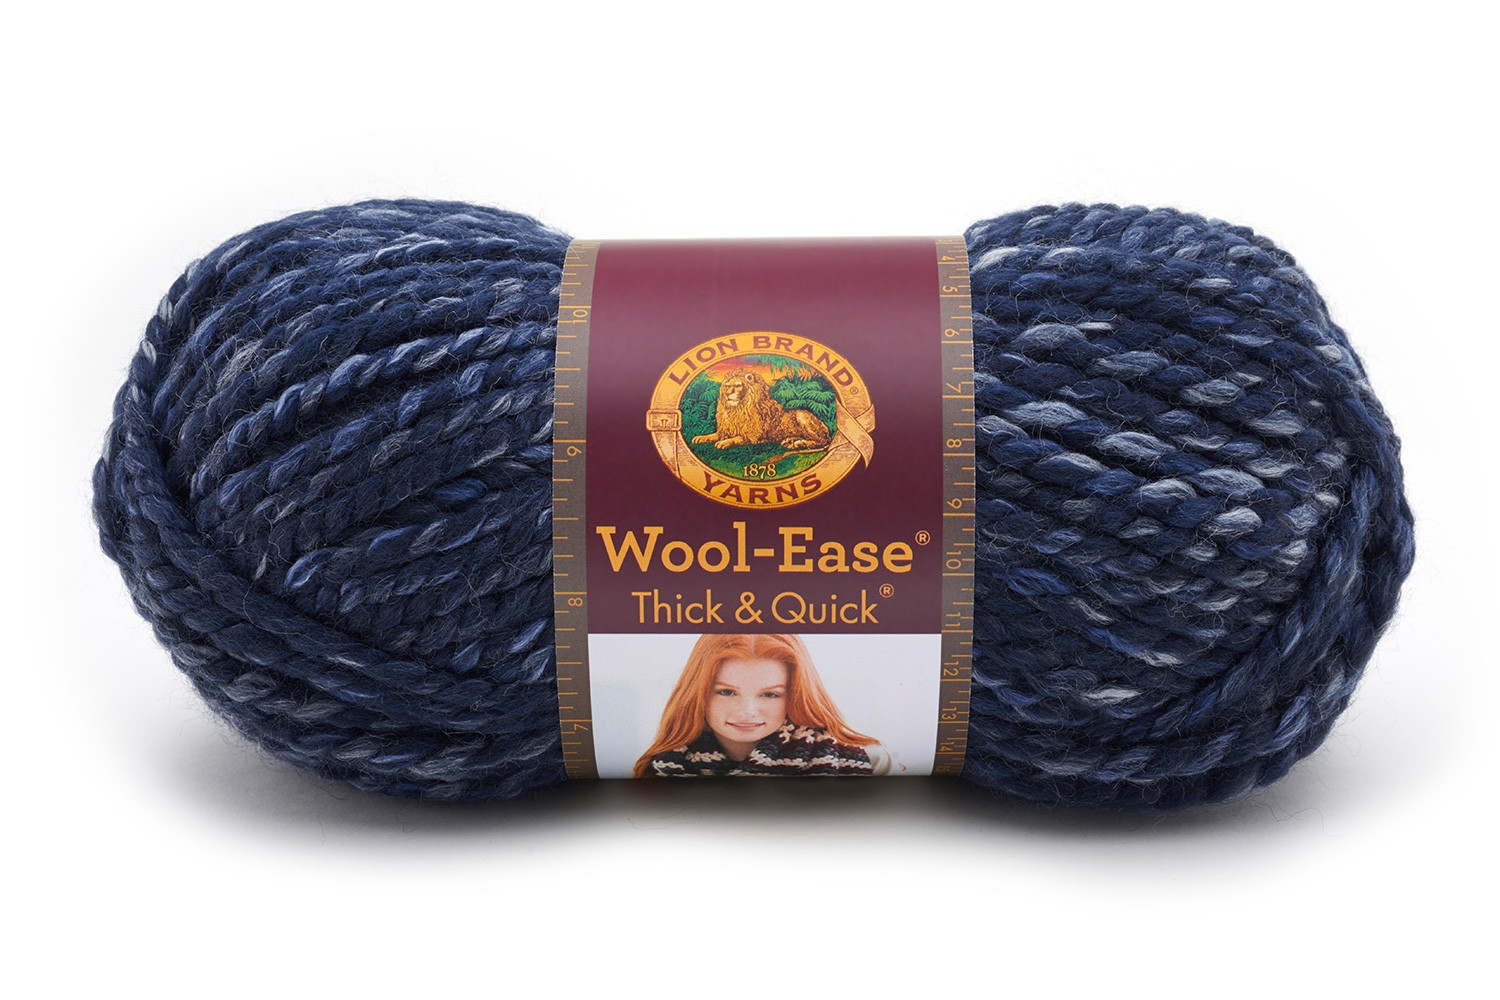 Wool-Ease Thick & Quick